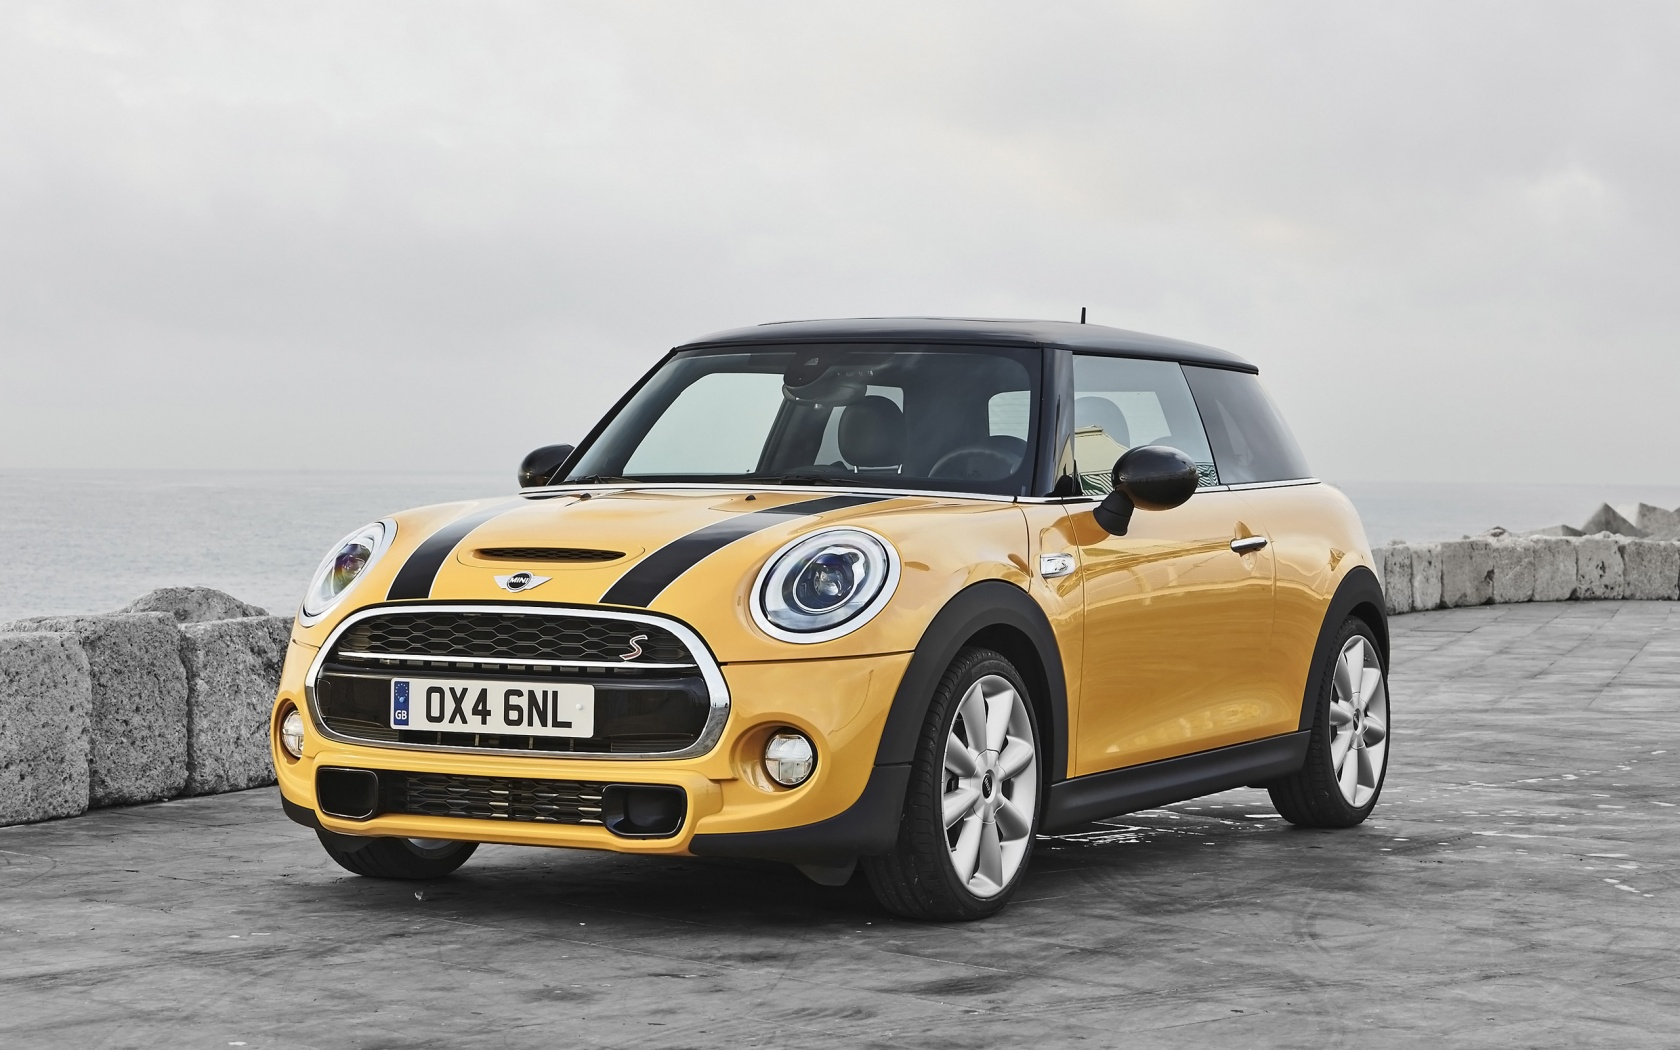 2014 Mini Cooper Hardtop S Wallpaper HD Car Wallpapers 1680x1050